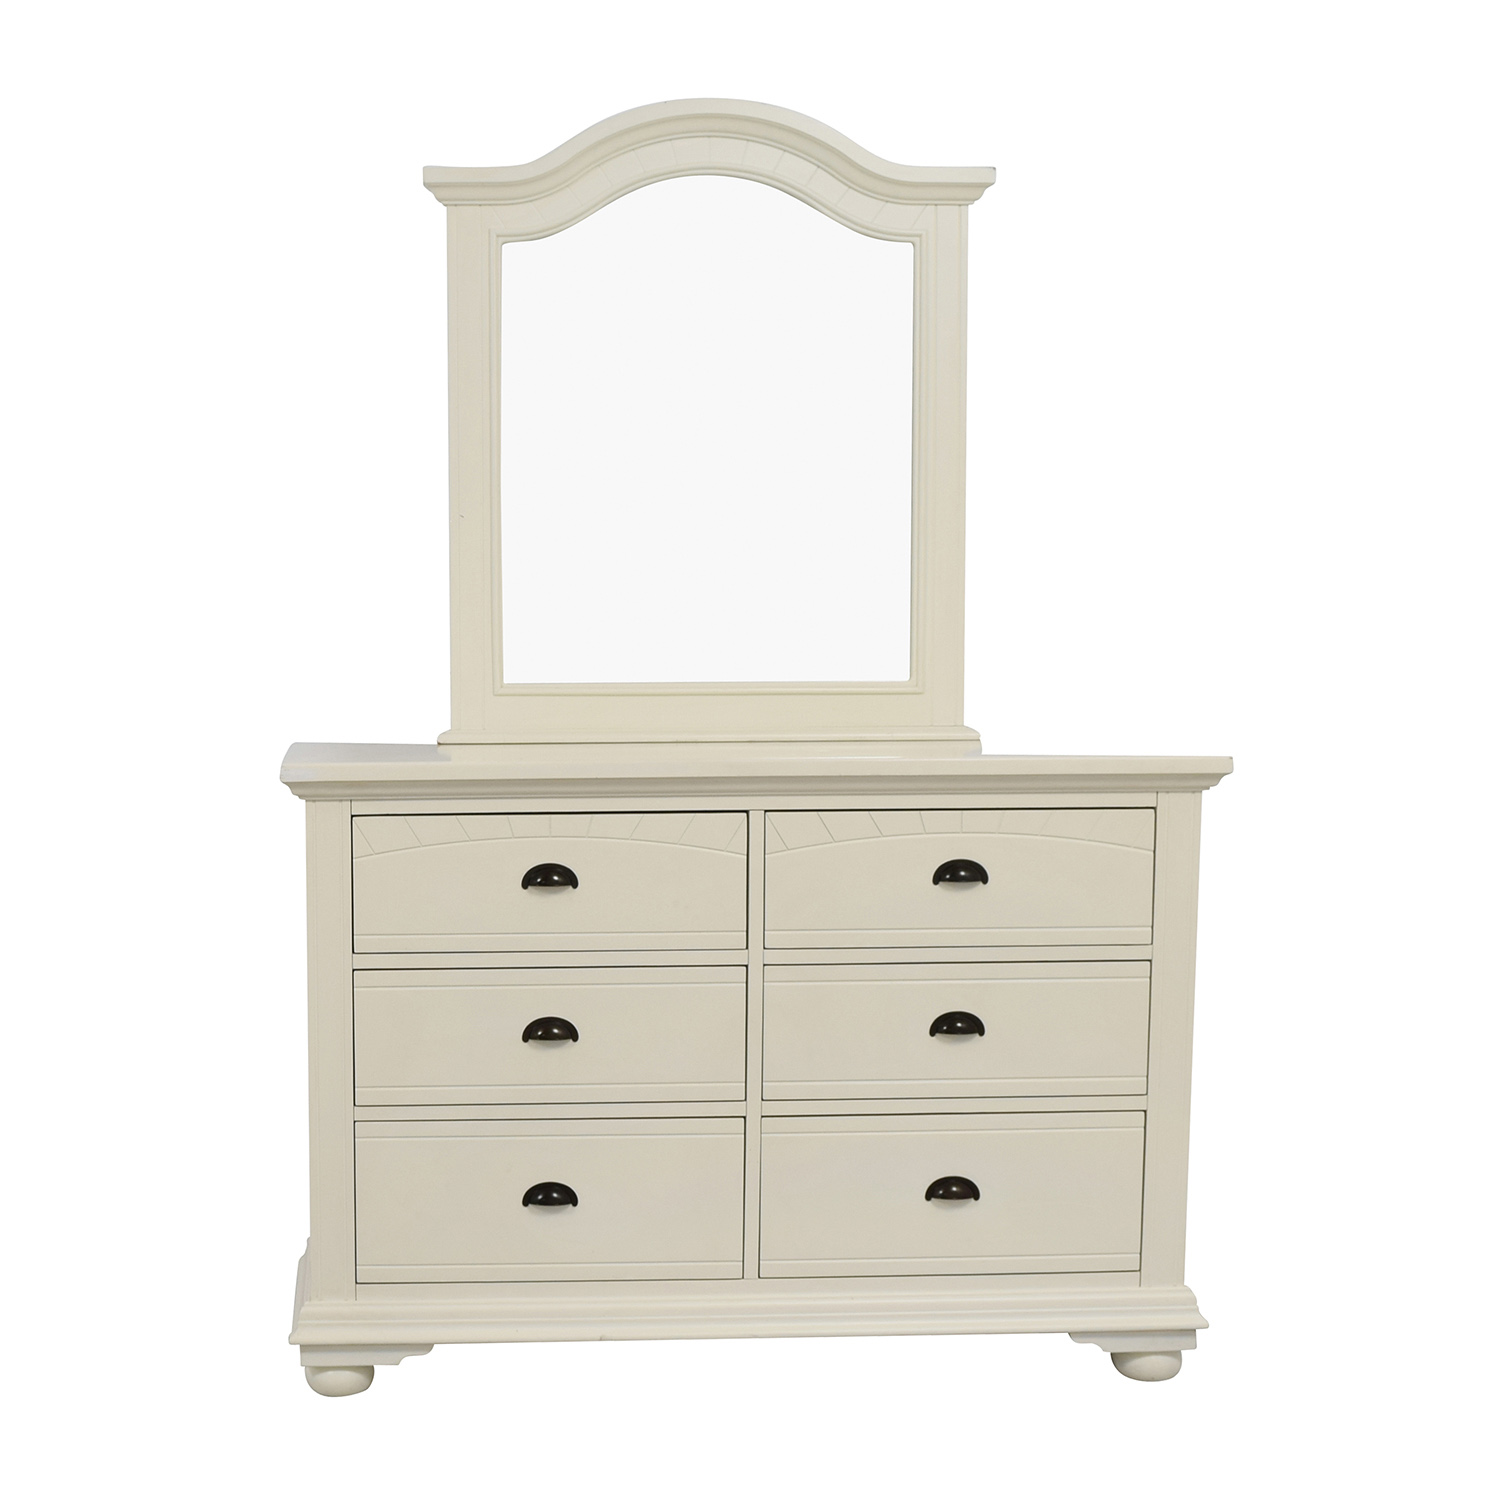 shop Bob's Furniture White Dresser with Mirror Bob's Furniture Storage